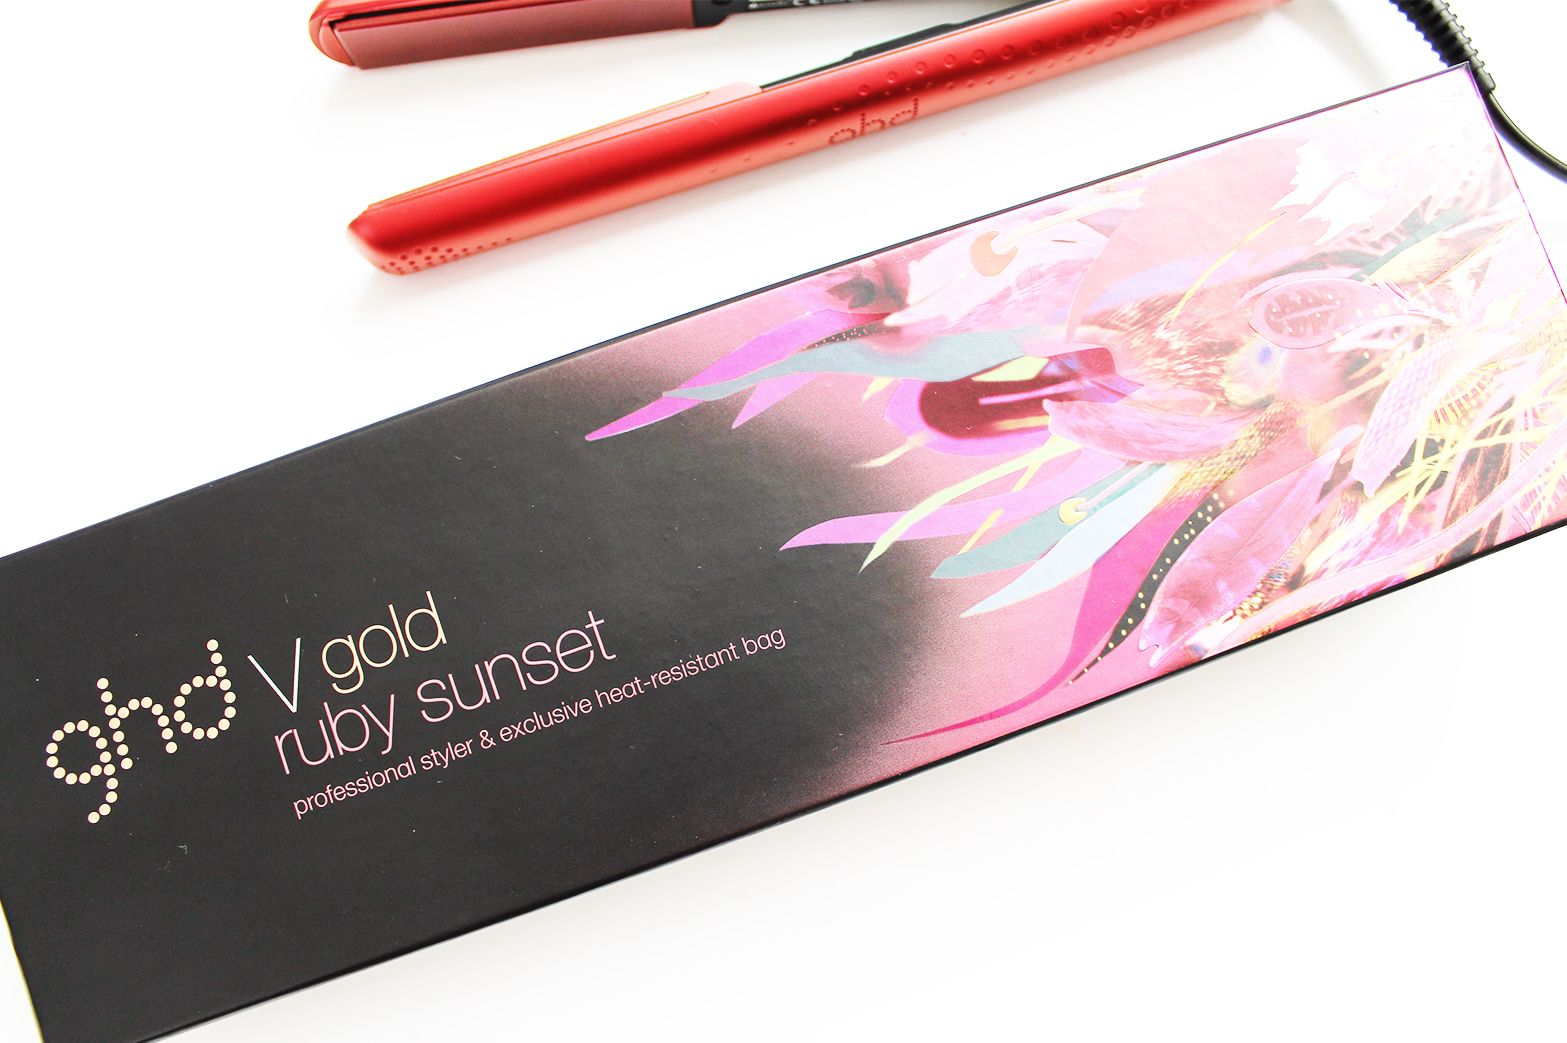 Get Red Carpet/Ball Ready with ghd V Ruby Sunset Styler - CassandraMyee #ad